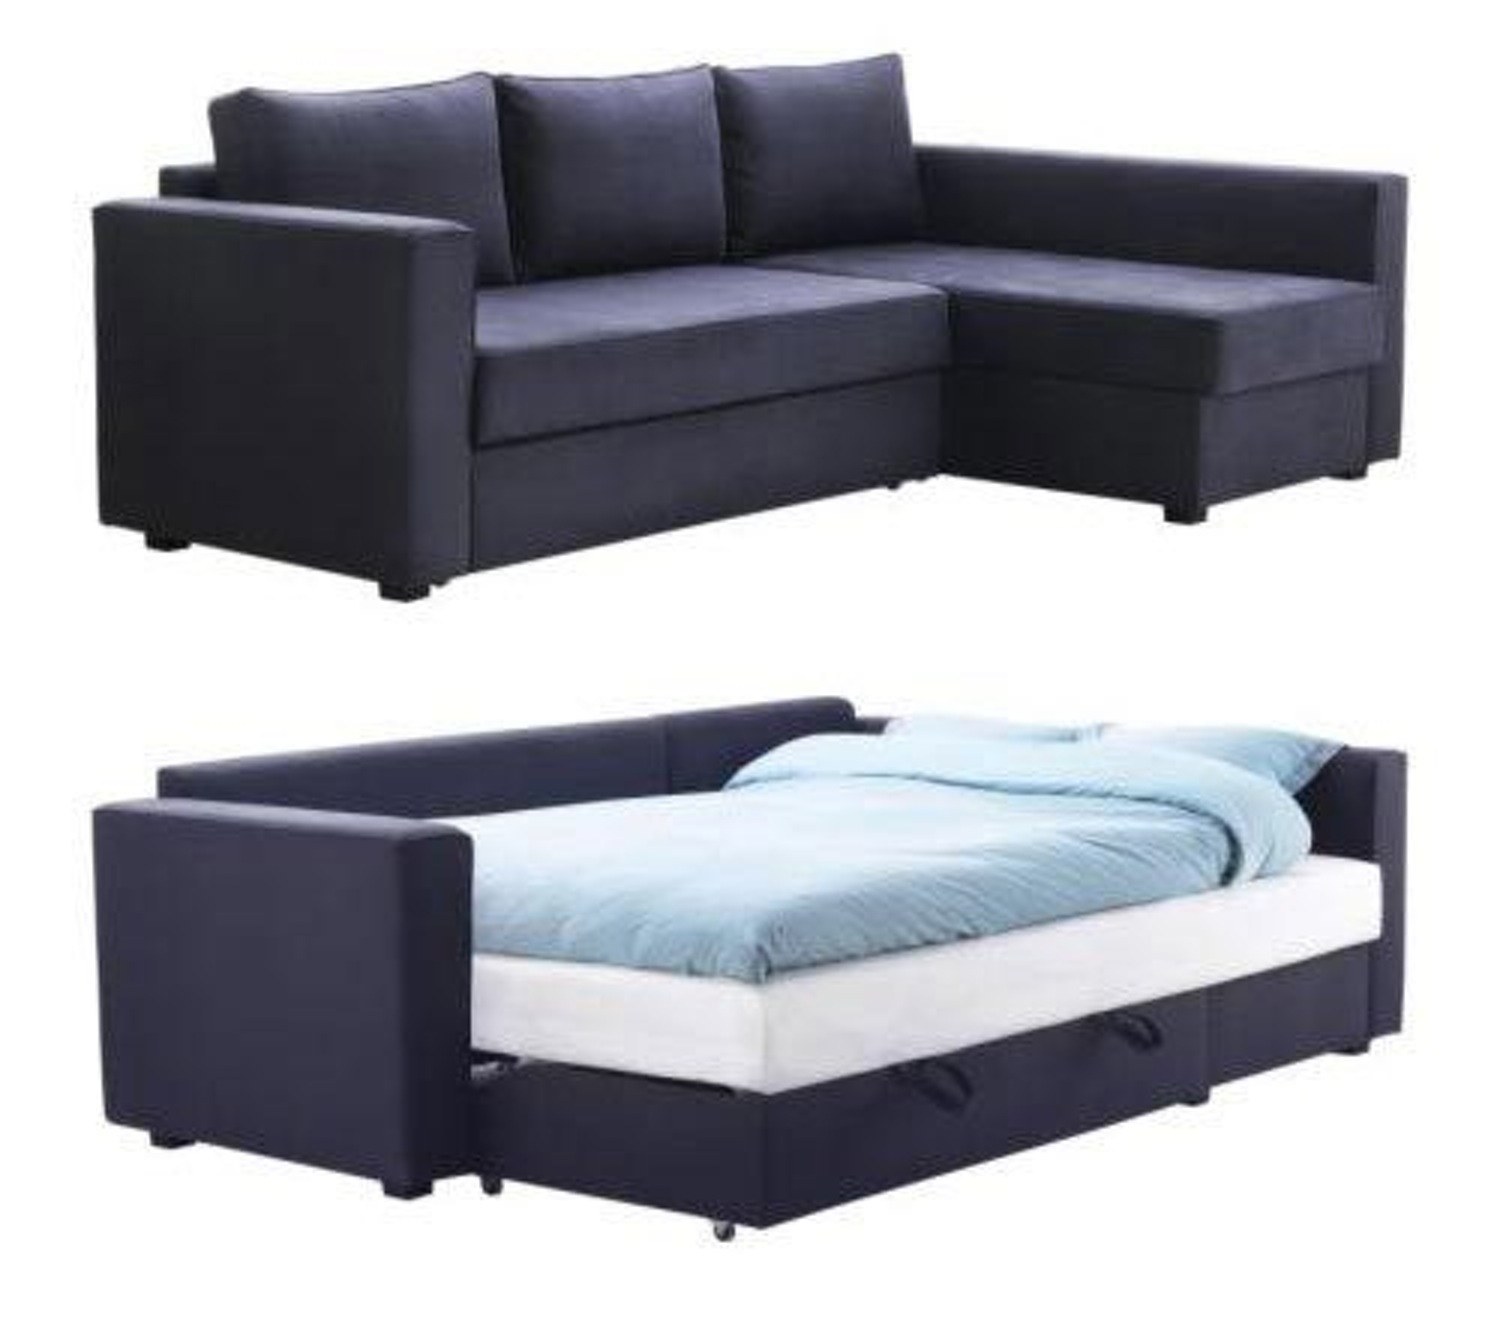 Manstad Sectional Sofa Bed & Storage From Ikea | Sofa Sleeper, Bed Pertaining To Sectional Sofas At Ikea (View 7 of 10)